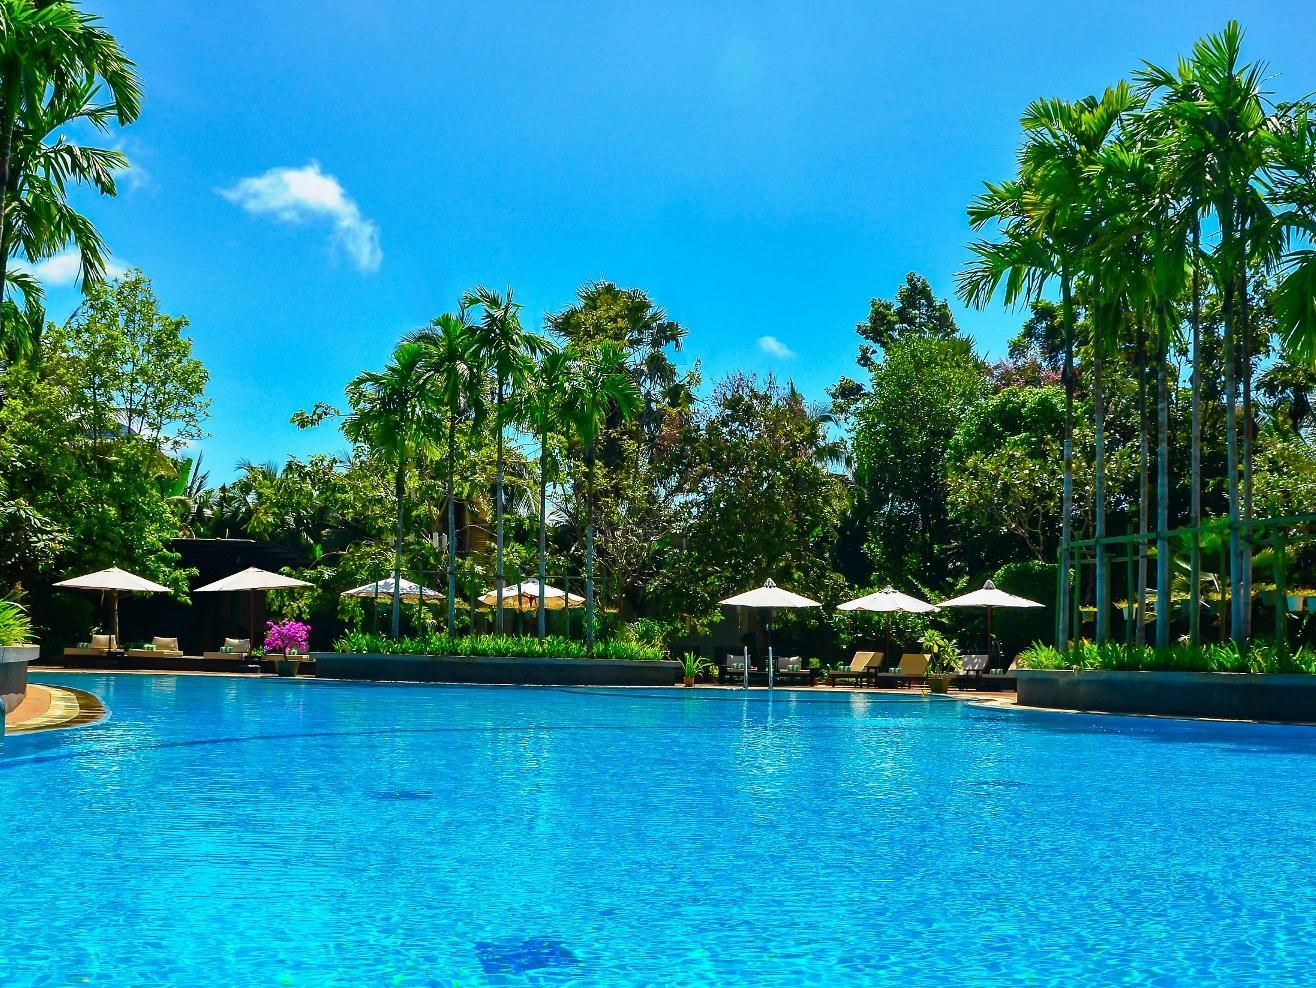 Borei Angkor Resort & Spa Siem Reap - Swimming Pool